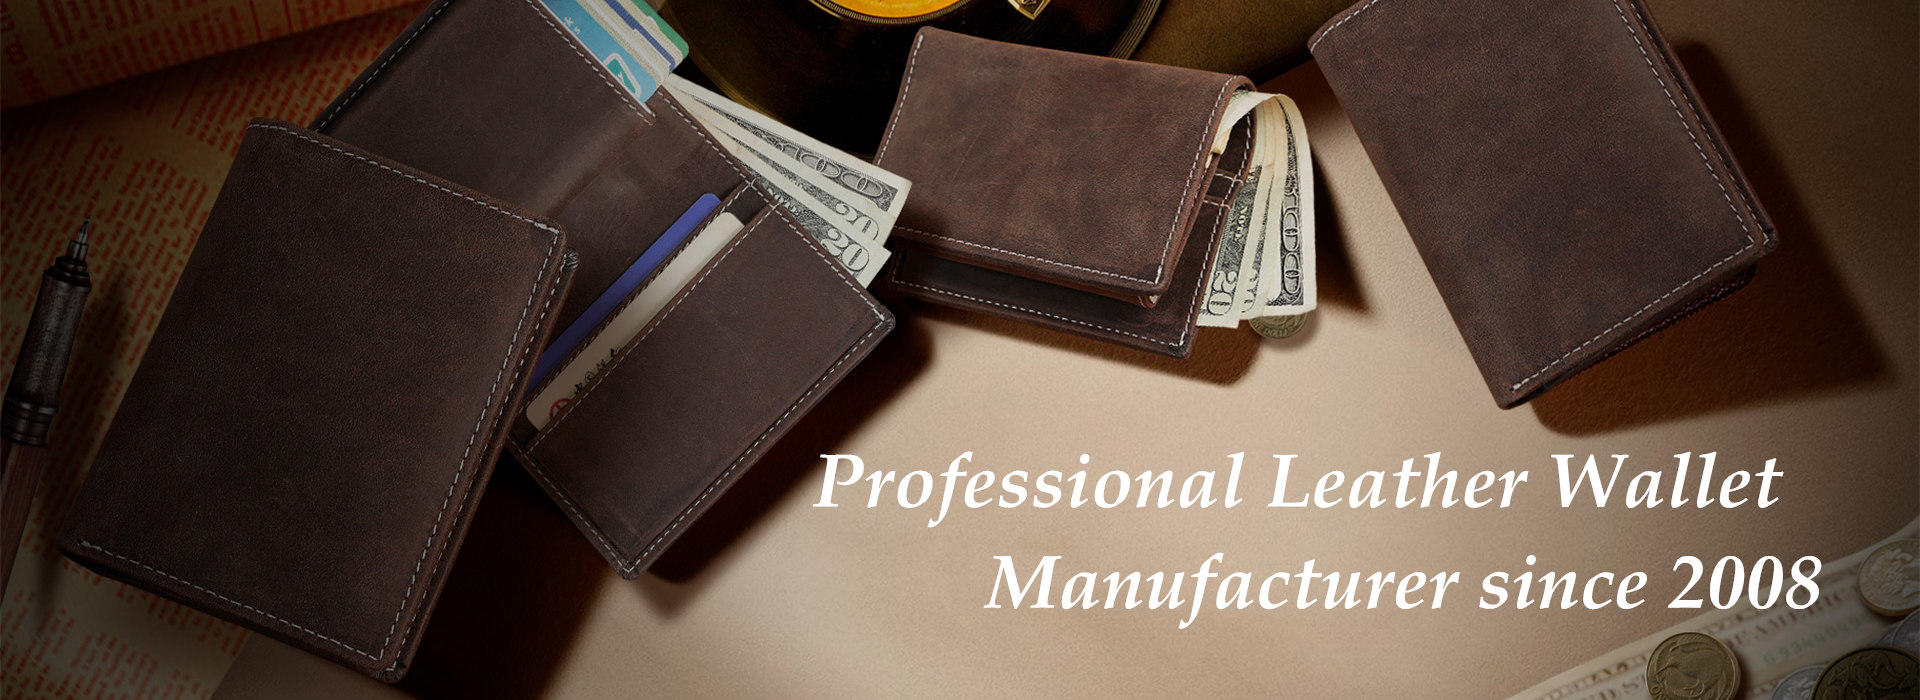 Leather Wallet Wholesale, Handmade Leather Wallet supplier